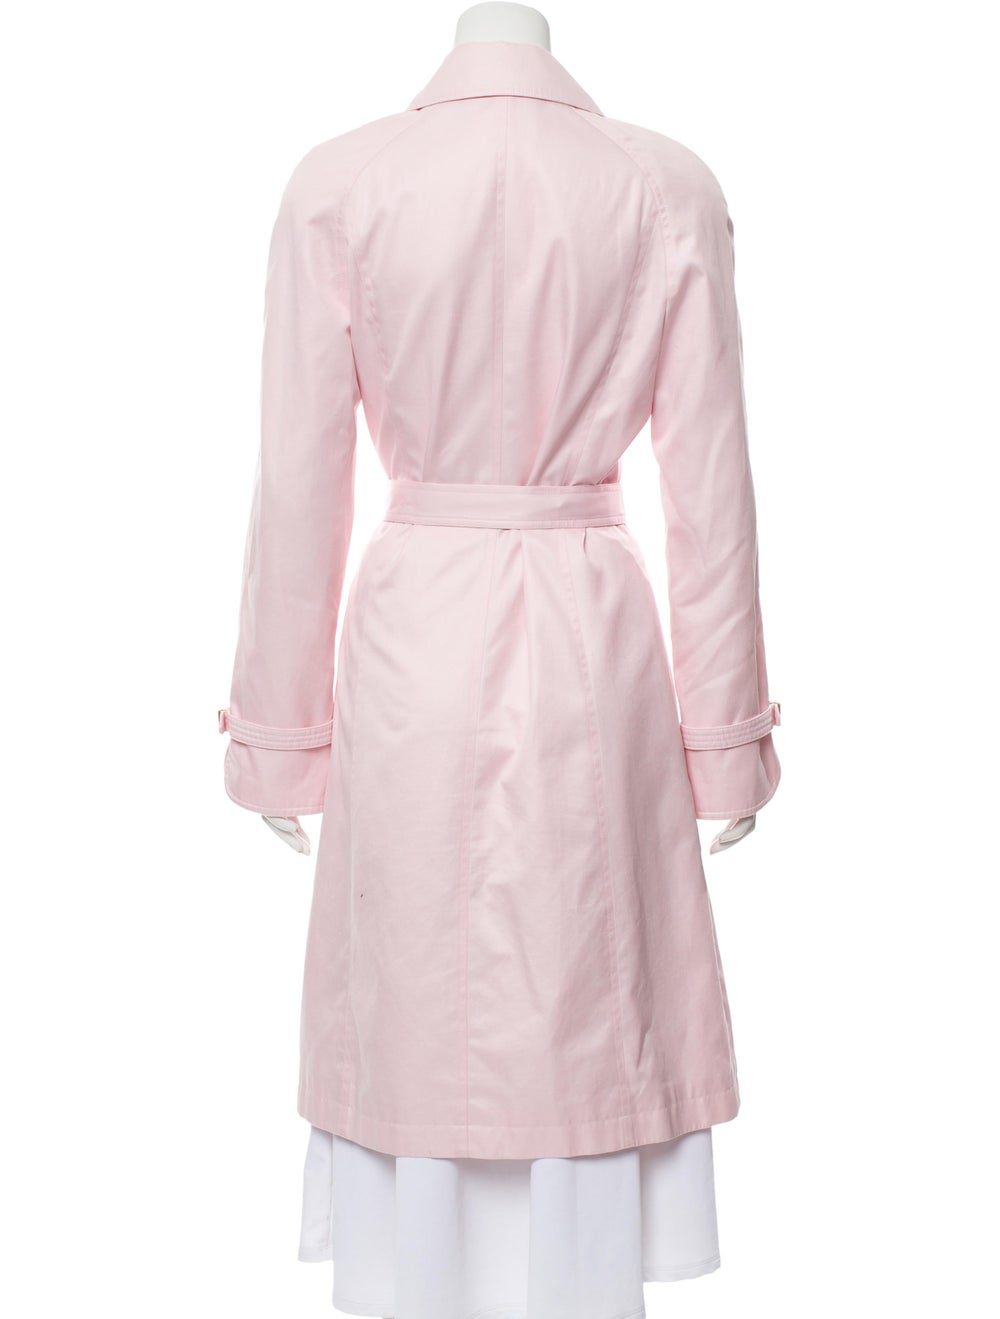 Escada Belted Long Coat Pink - image 3